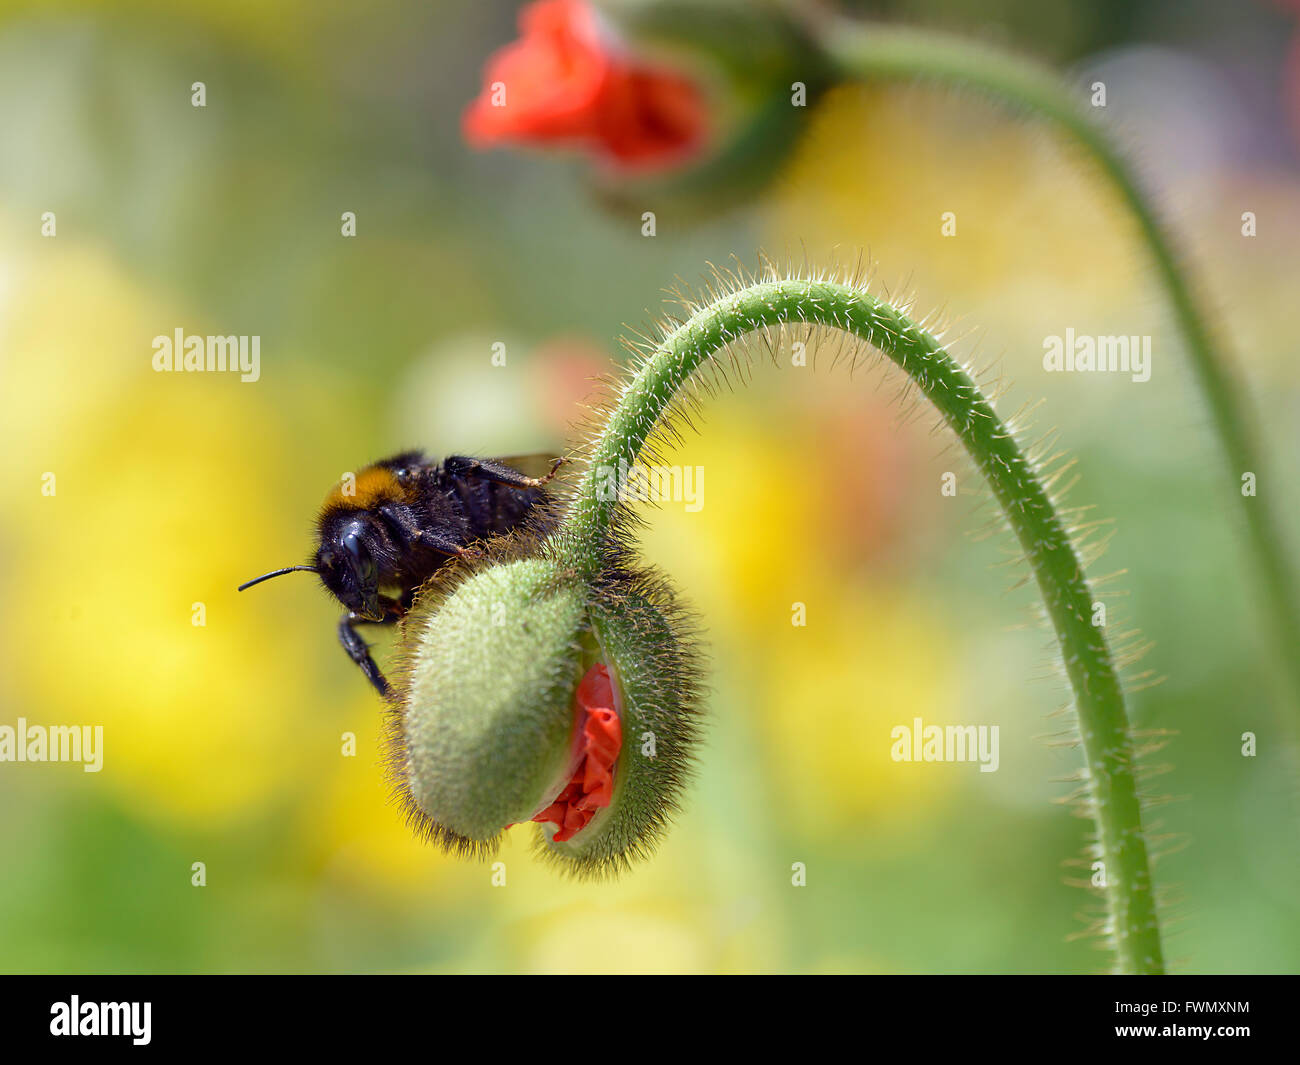 Macro of bumblebee (Bombus) on hairy bud poppy - Stock Image